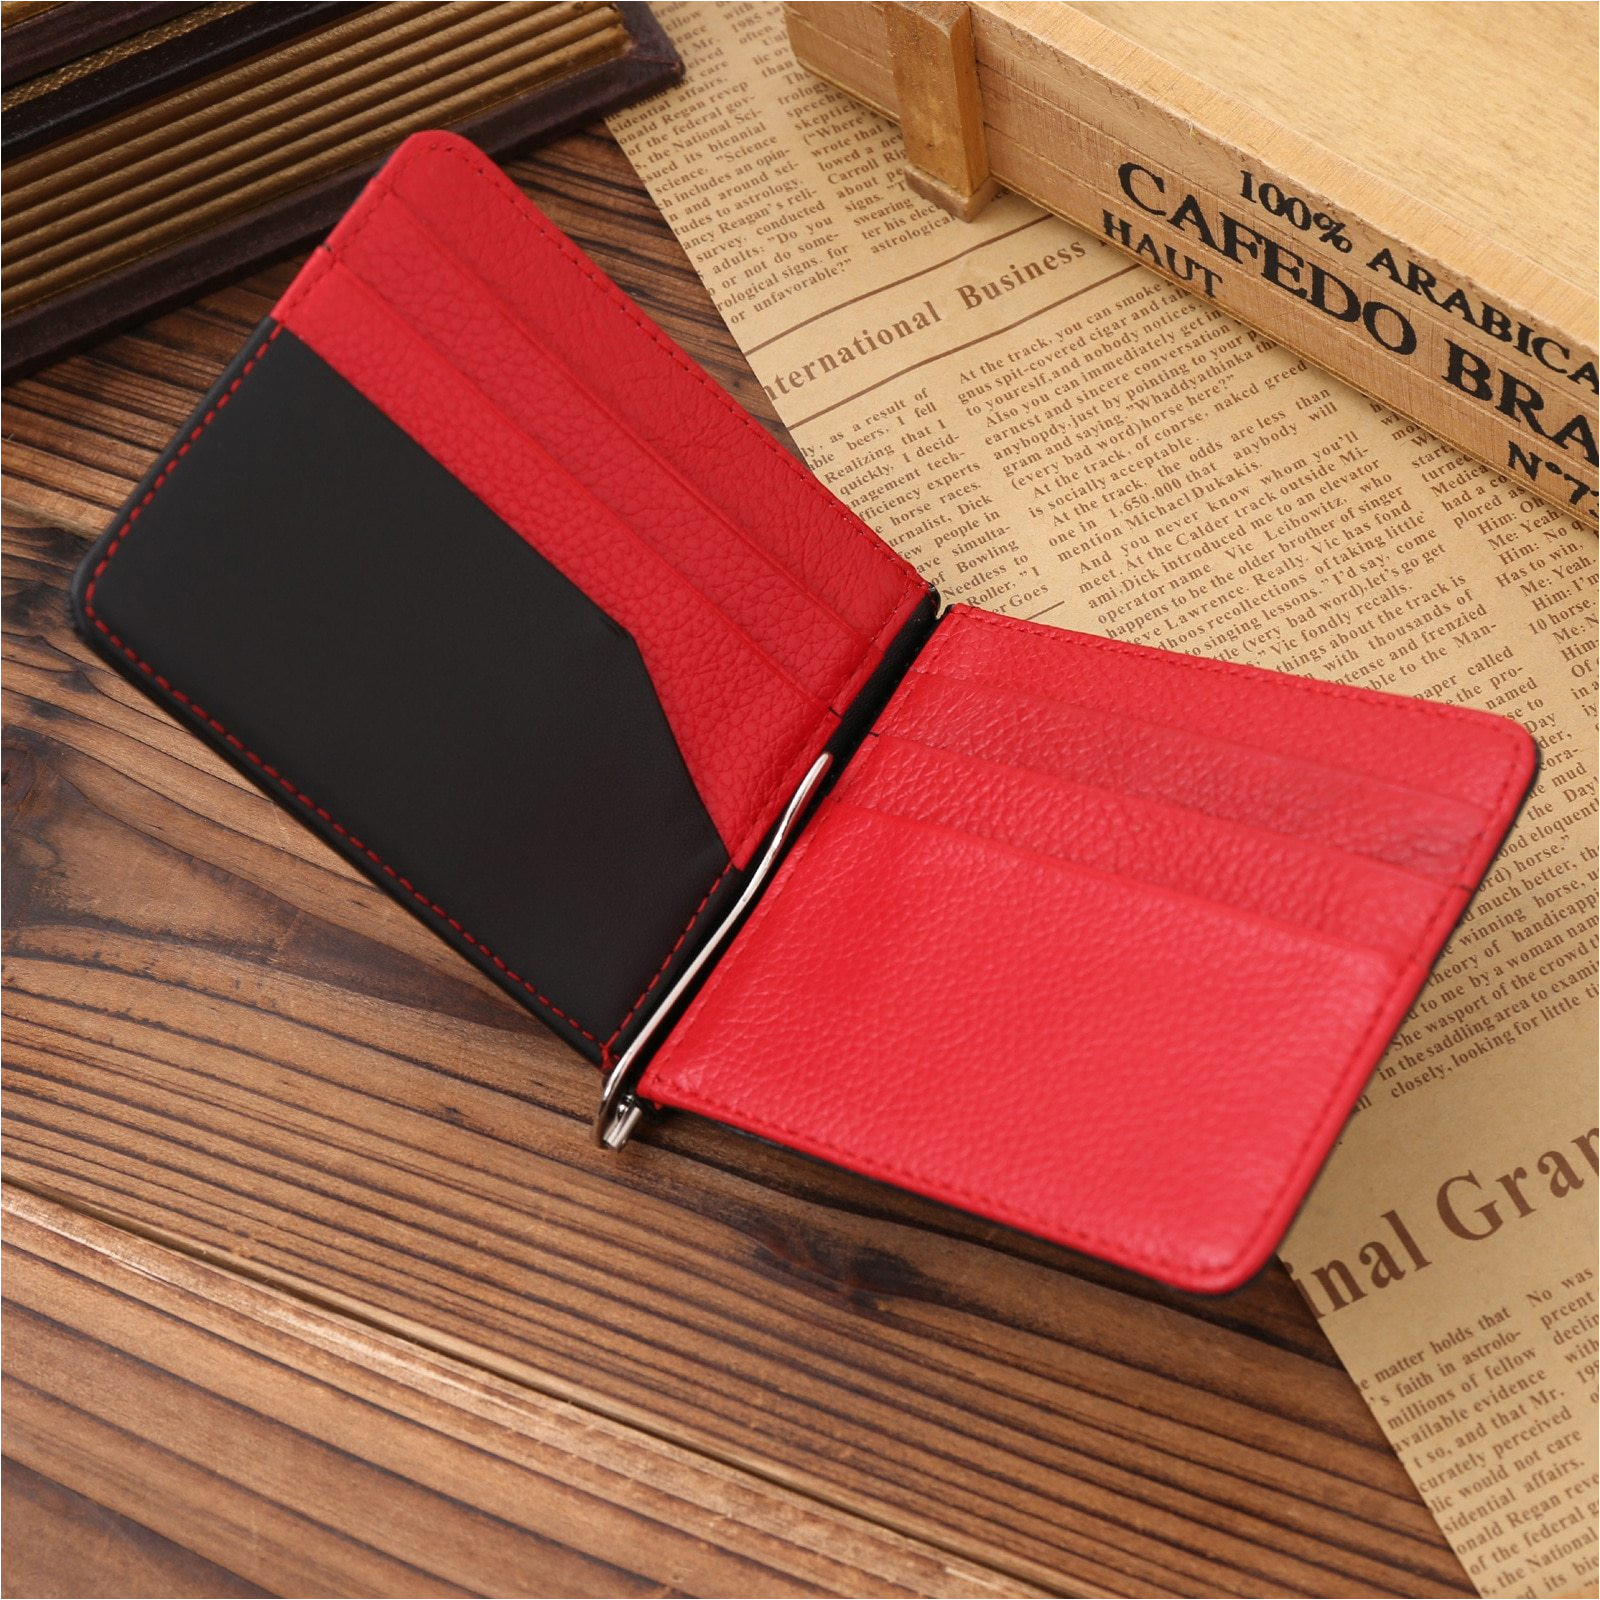 jinbaolai genuine leather simple male black money clip with credit card slots bits fashion famous brand 463b73a7 5279 46d3 a87f 1bcfb904f8cd jpg